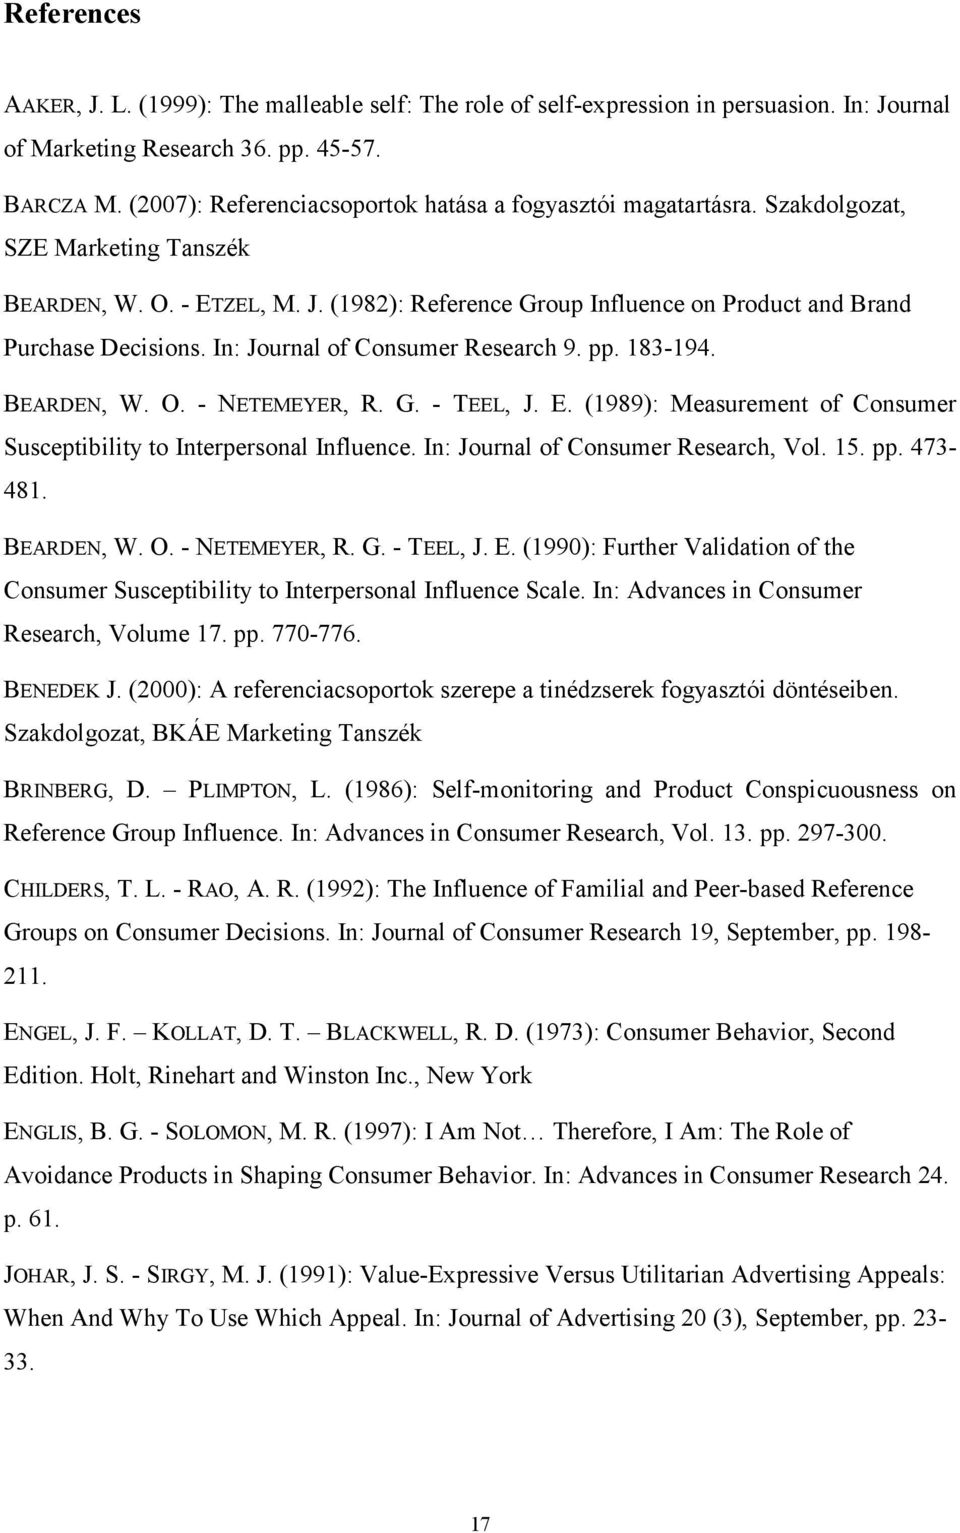 (1982): Reference Group Influence on Product and Brand Purchase Decisions. In: Journal of Consumer Research 9. pp. 183-194. BEARDEN, W. O. - NETEMEYER, R. G. - TEEL, J. E.